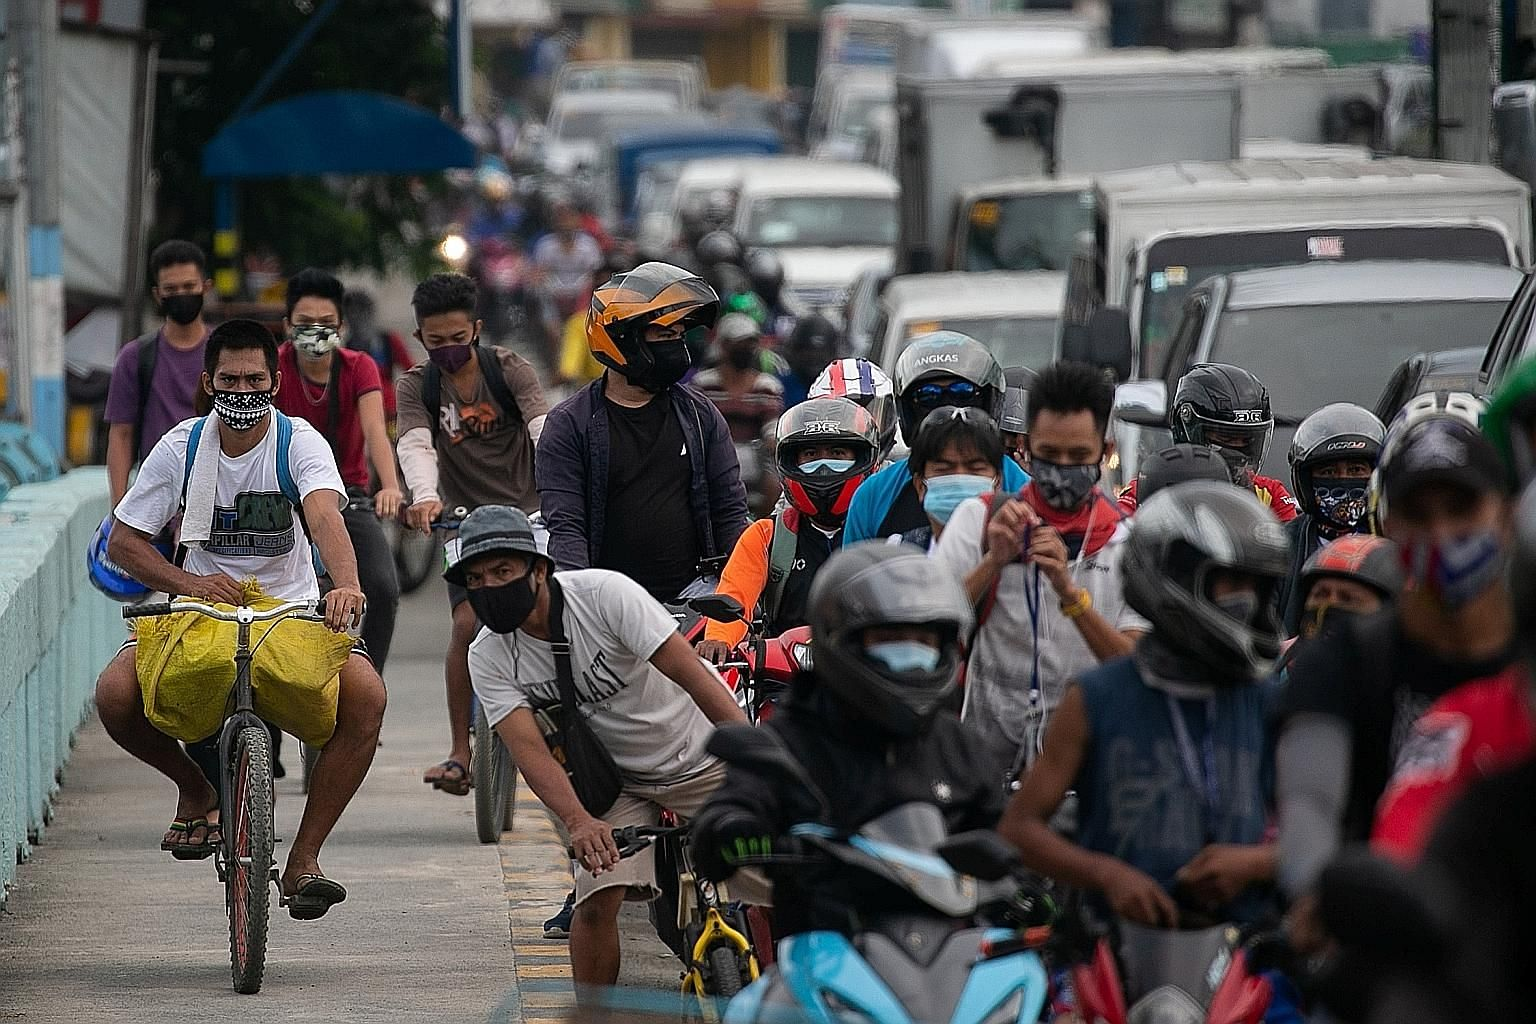 Cyclists riding on the sidewalk as traffic built up at a checkpoint in Marikina city in Metro Manila yesterday, the first day of a stricter lockdown to curb coronavirus infections in the Philippines. PHOTO: REUTERS A Philippine soldier checking the d